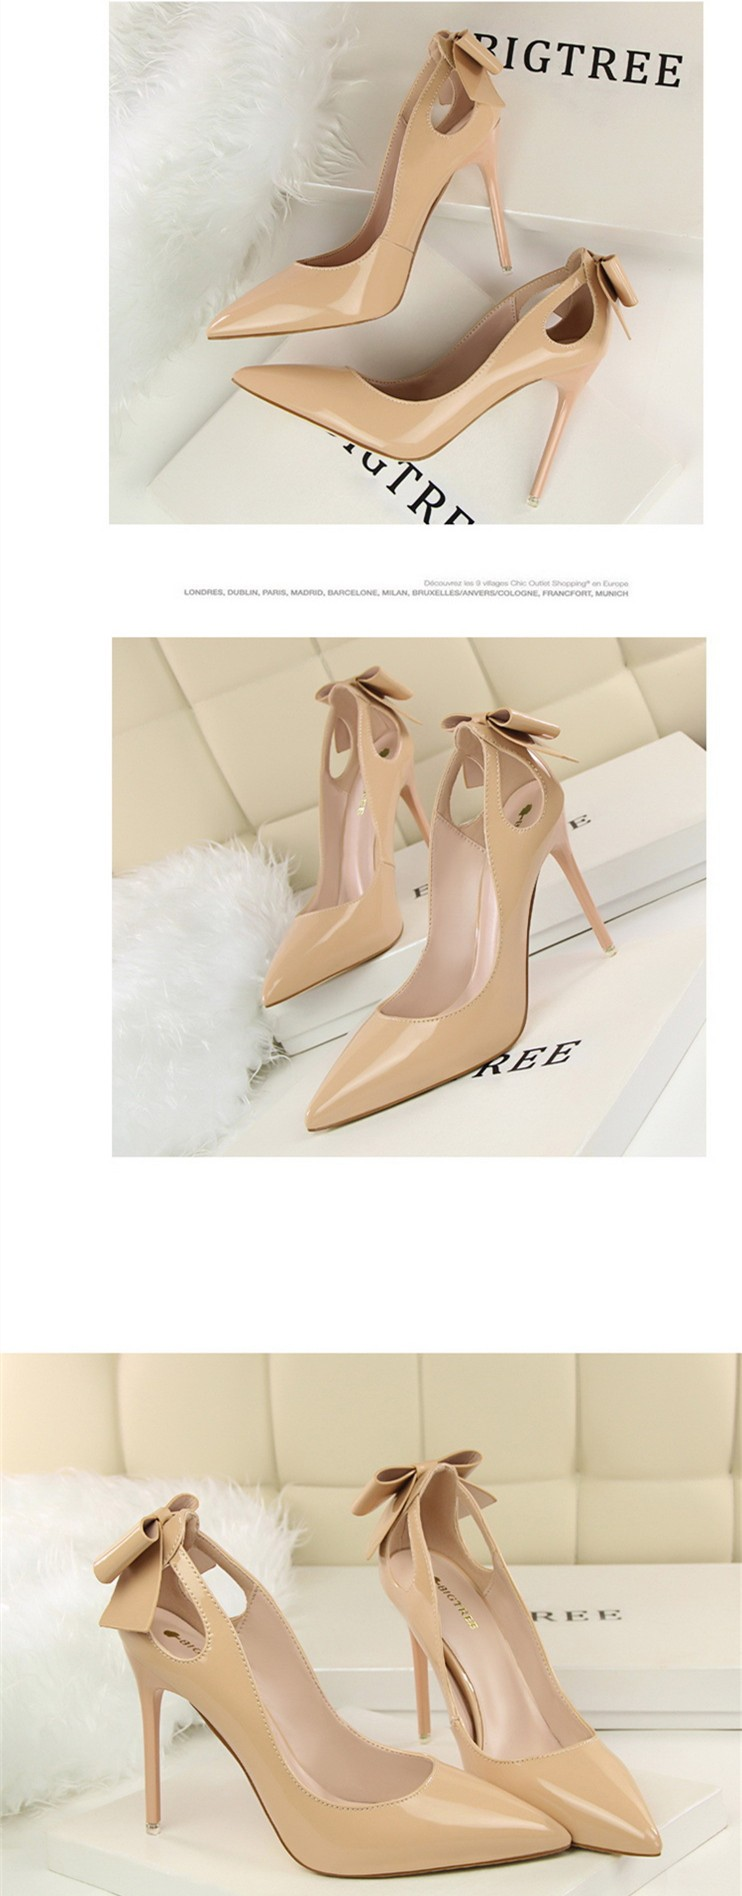 Size 4~8 Autumn Sexy Nude Women Shoes 6 Color Bowties High Heels Shoes Pointed Toe Women Pumps zapatos mujer (Check Foot Length)